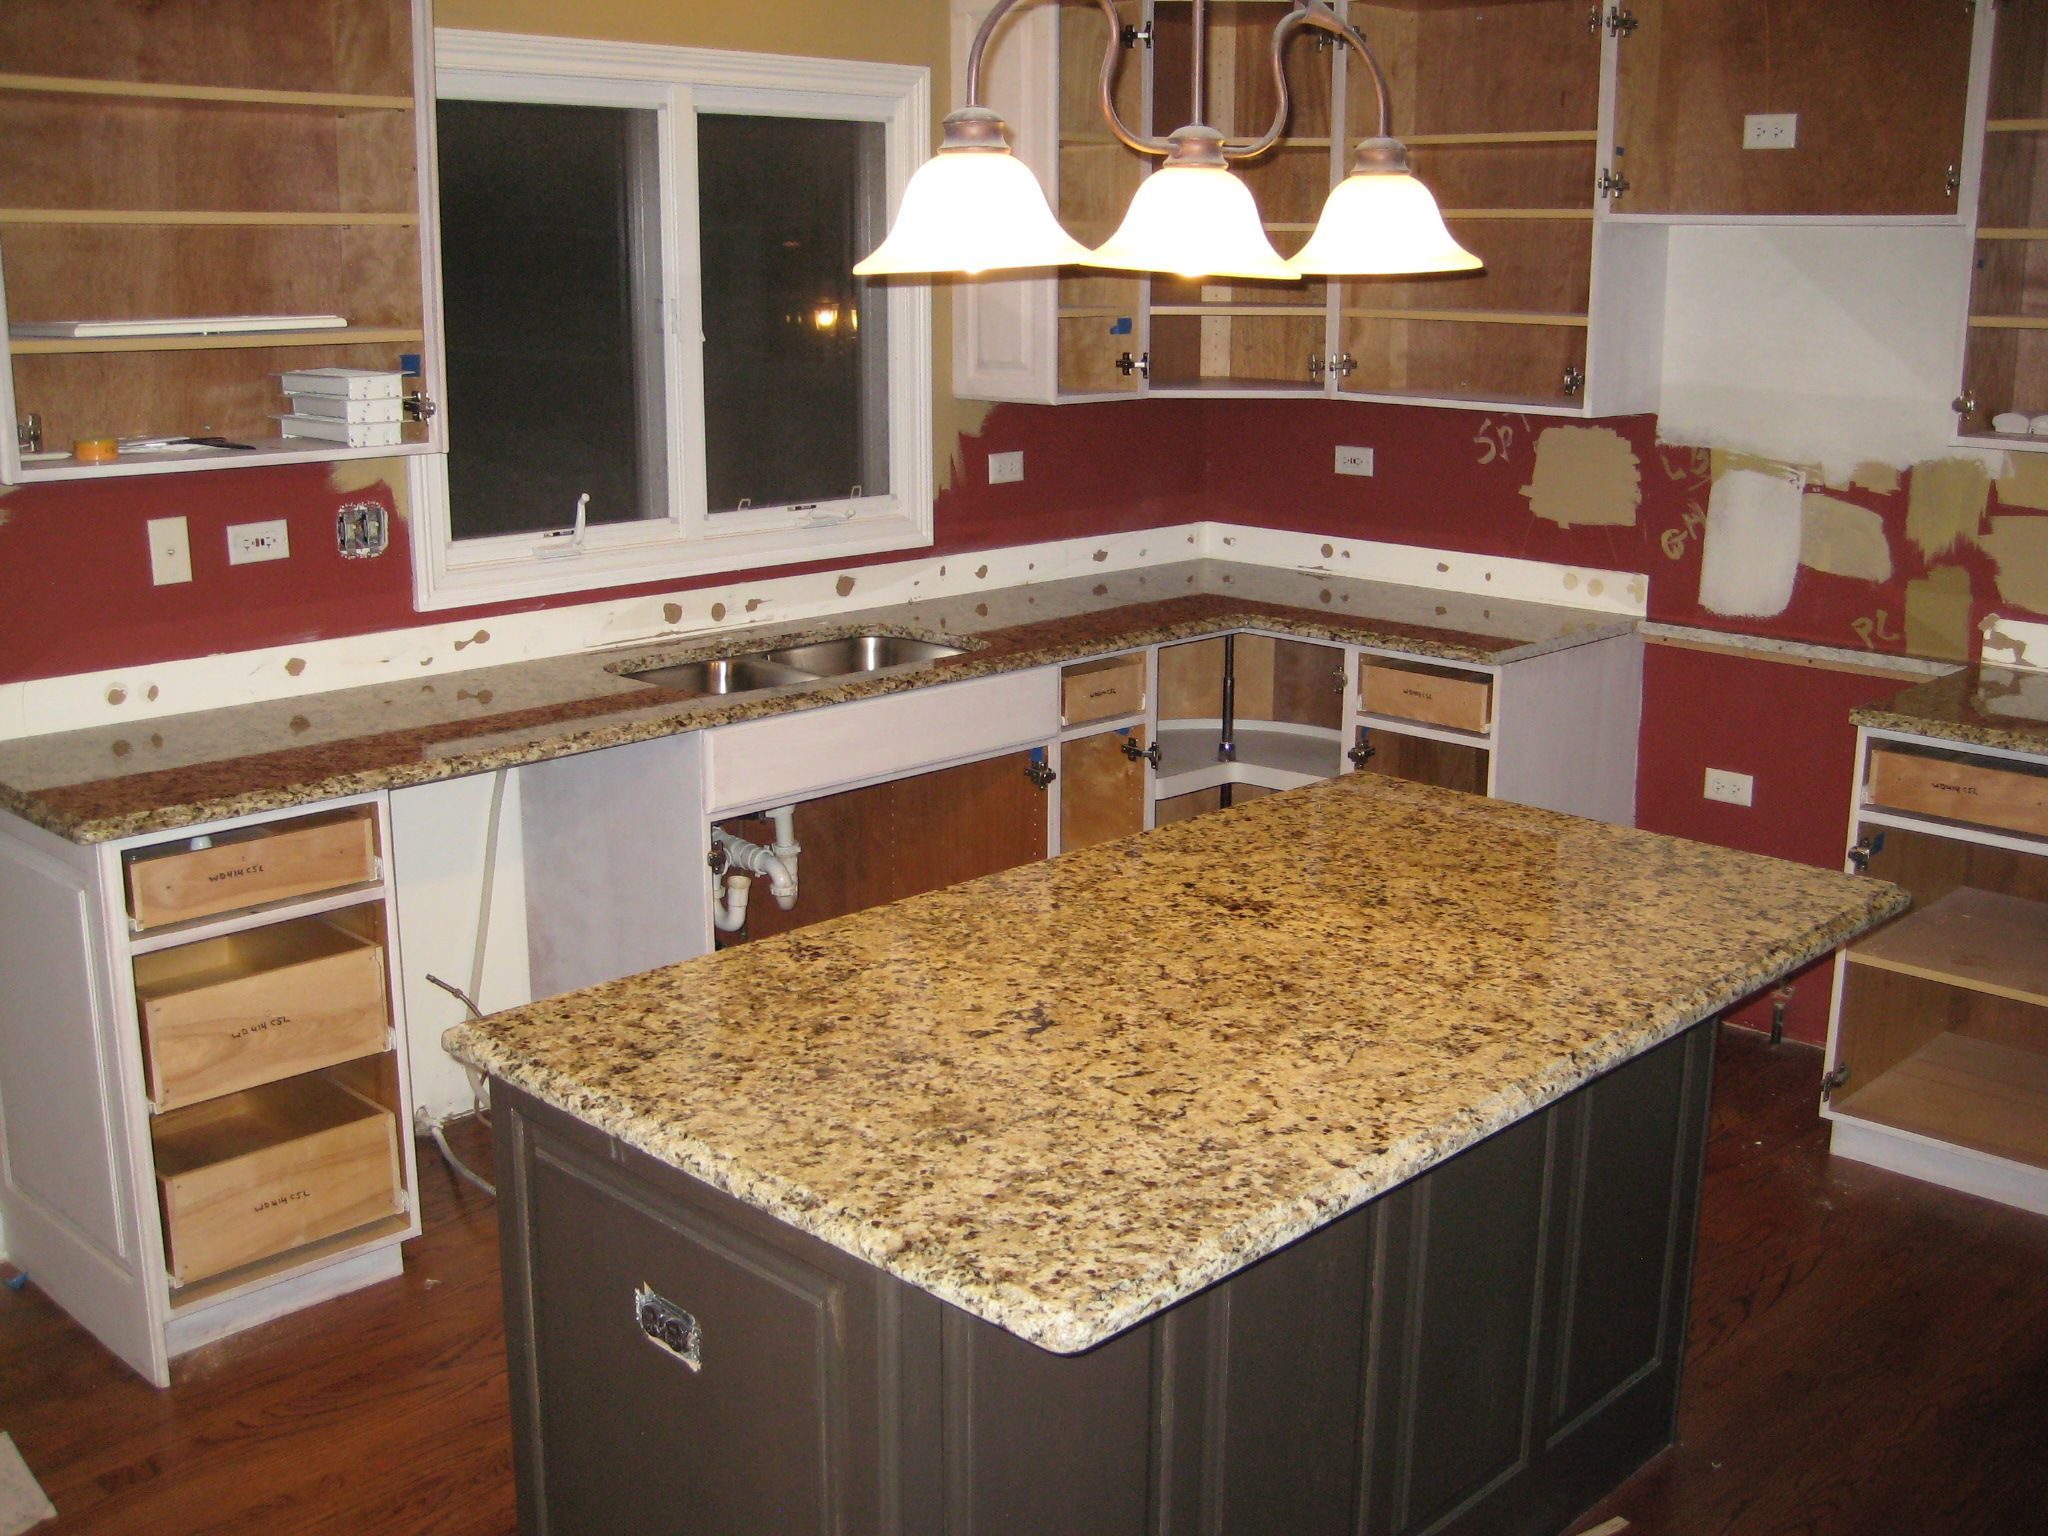 Granite Color Giallo Napoli 36 00 Per Sf Installed Fabricated And By Art Countertops